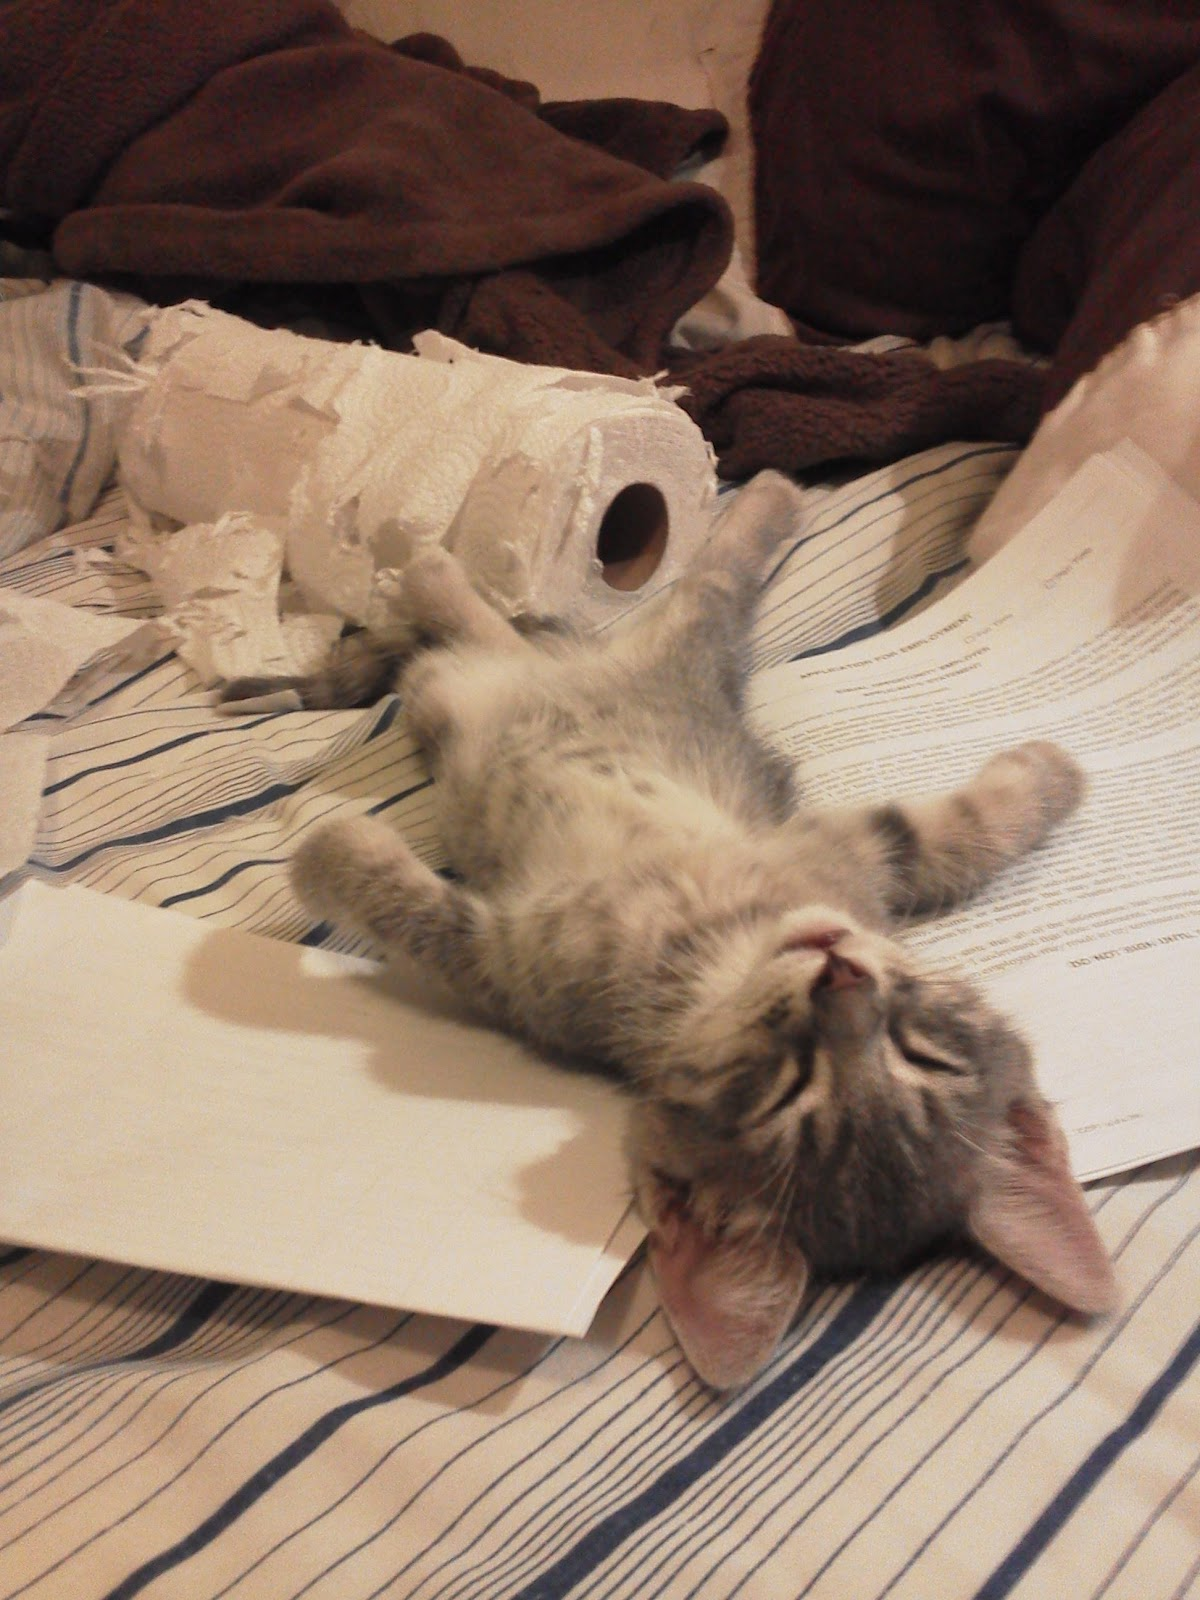 Cute!: Why is this kitten so tired?  Cute!: Why is t...